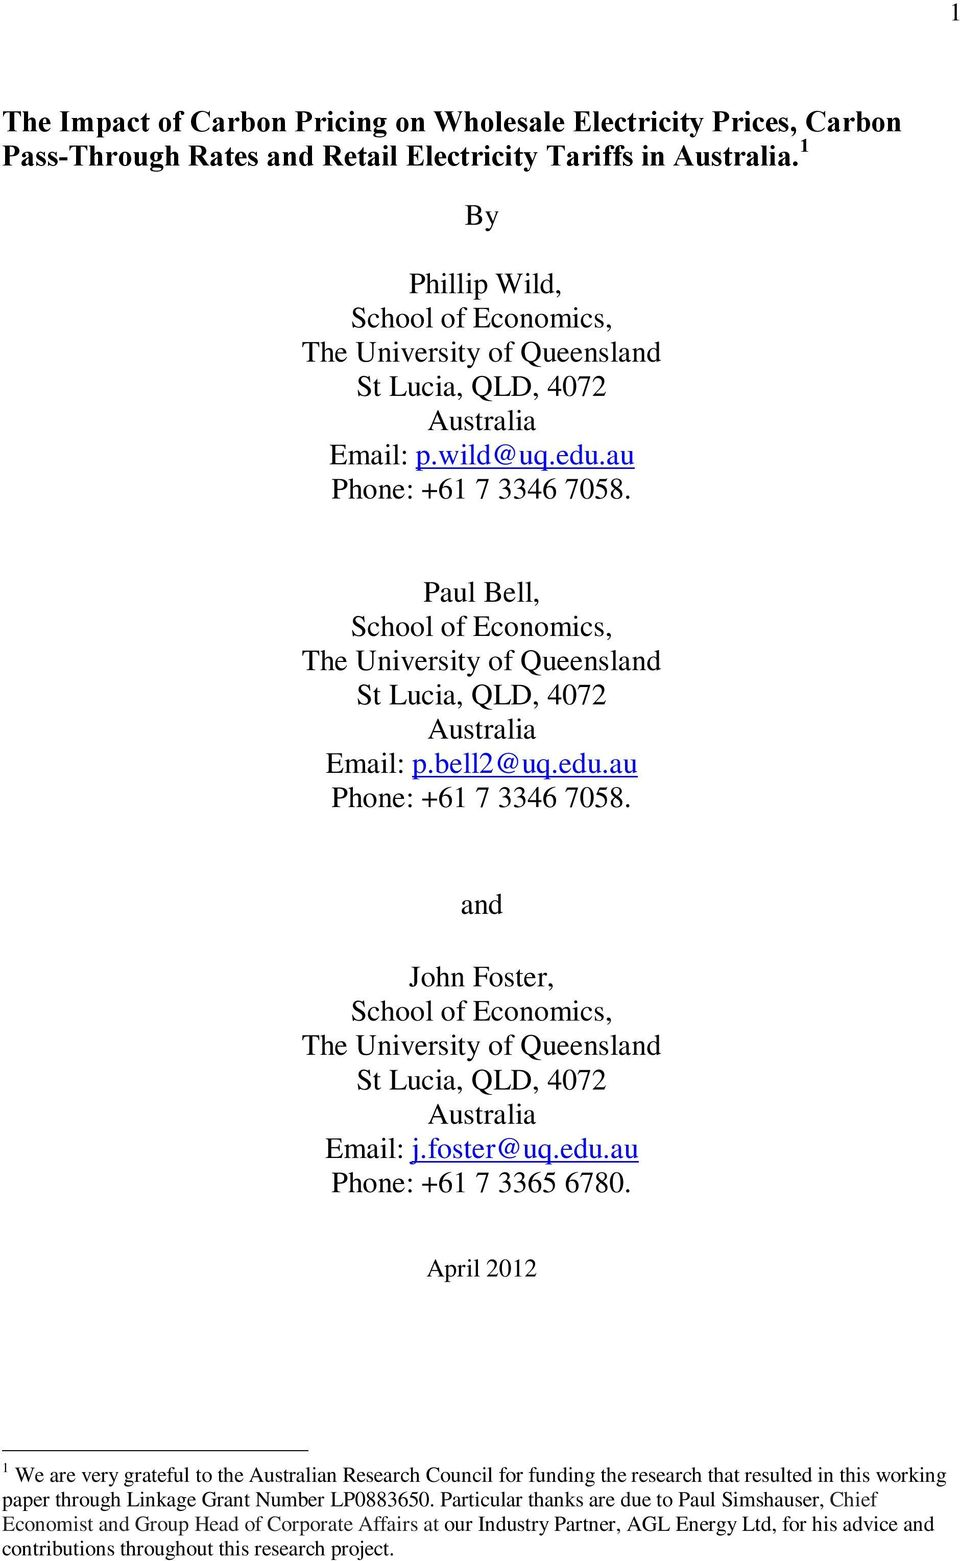 Paul Bell, School of Economics, The University of Queensland St Lucia, QLD, 4072 Australia Email: p.bell2@uq.edu.au Phone: +61 7 3346 7058.